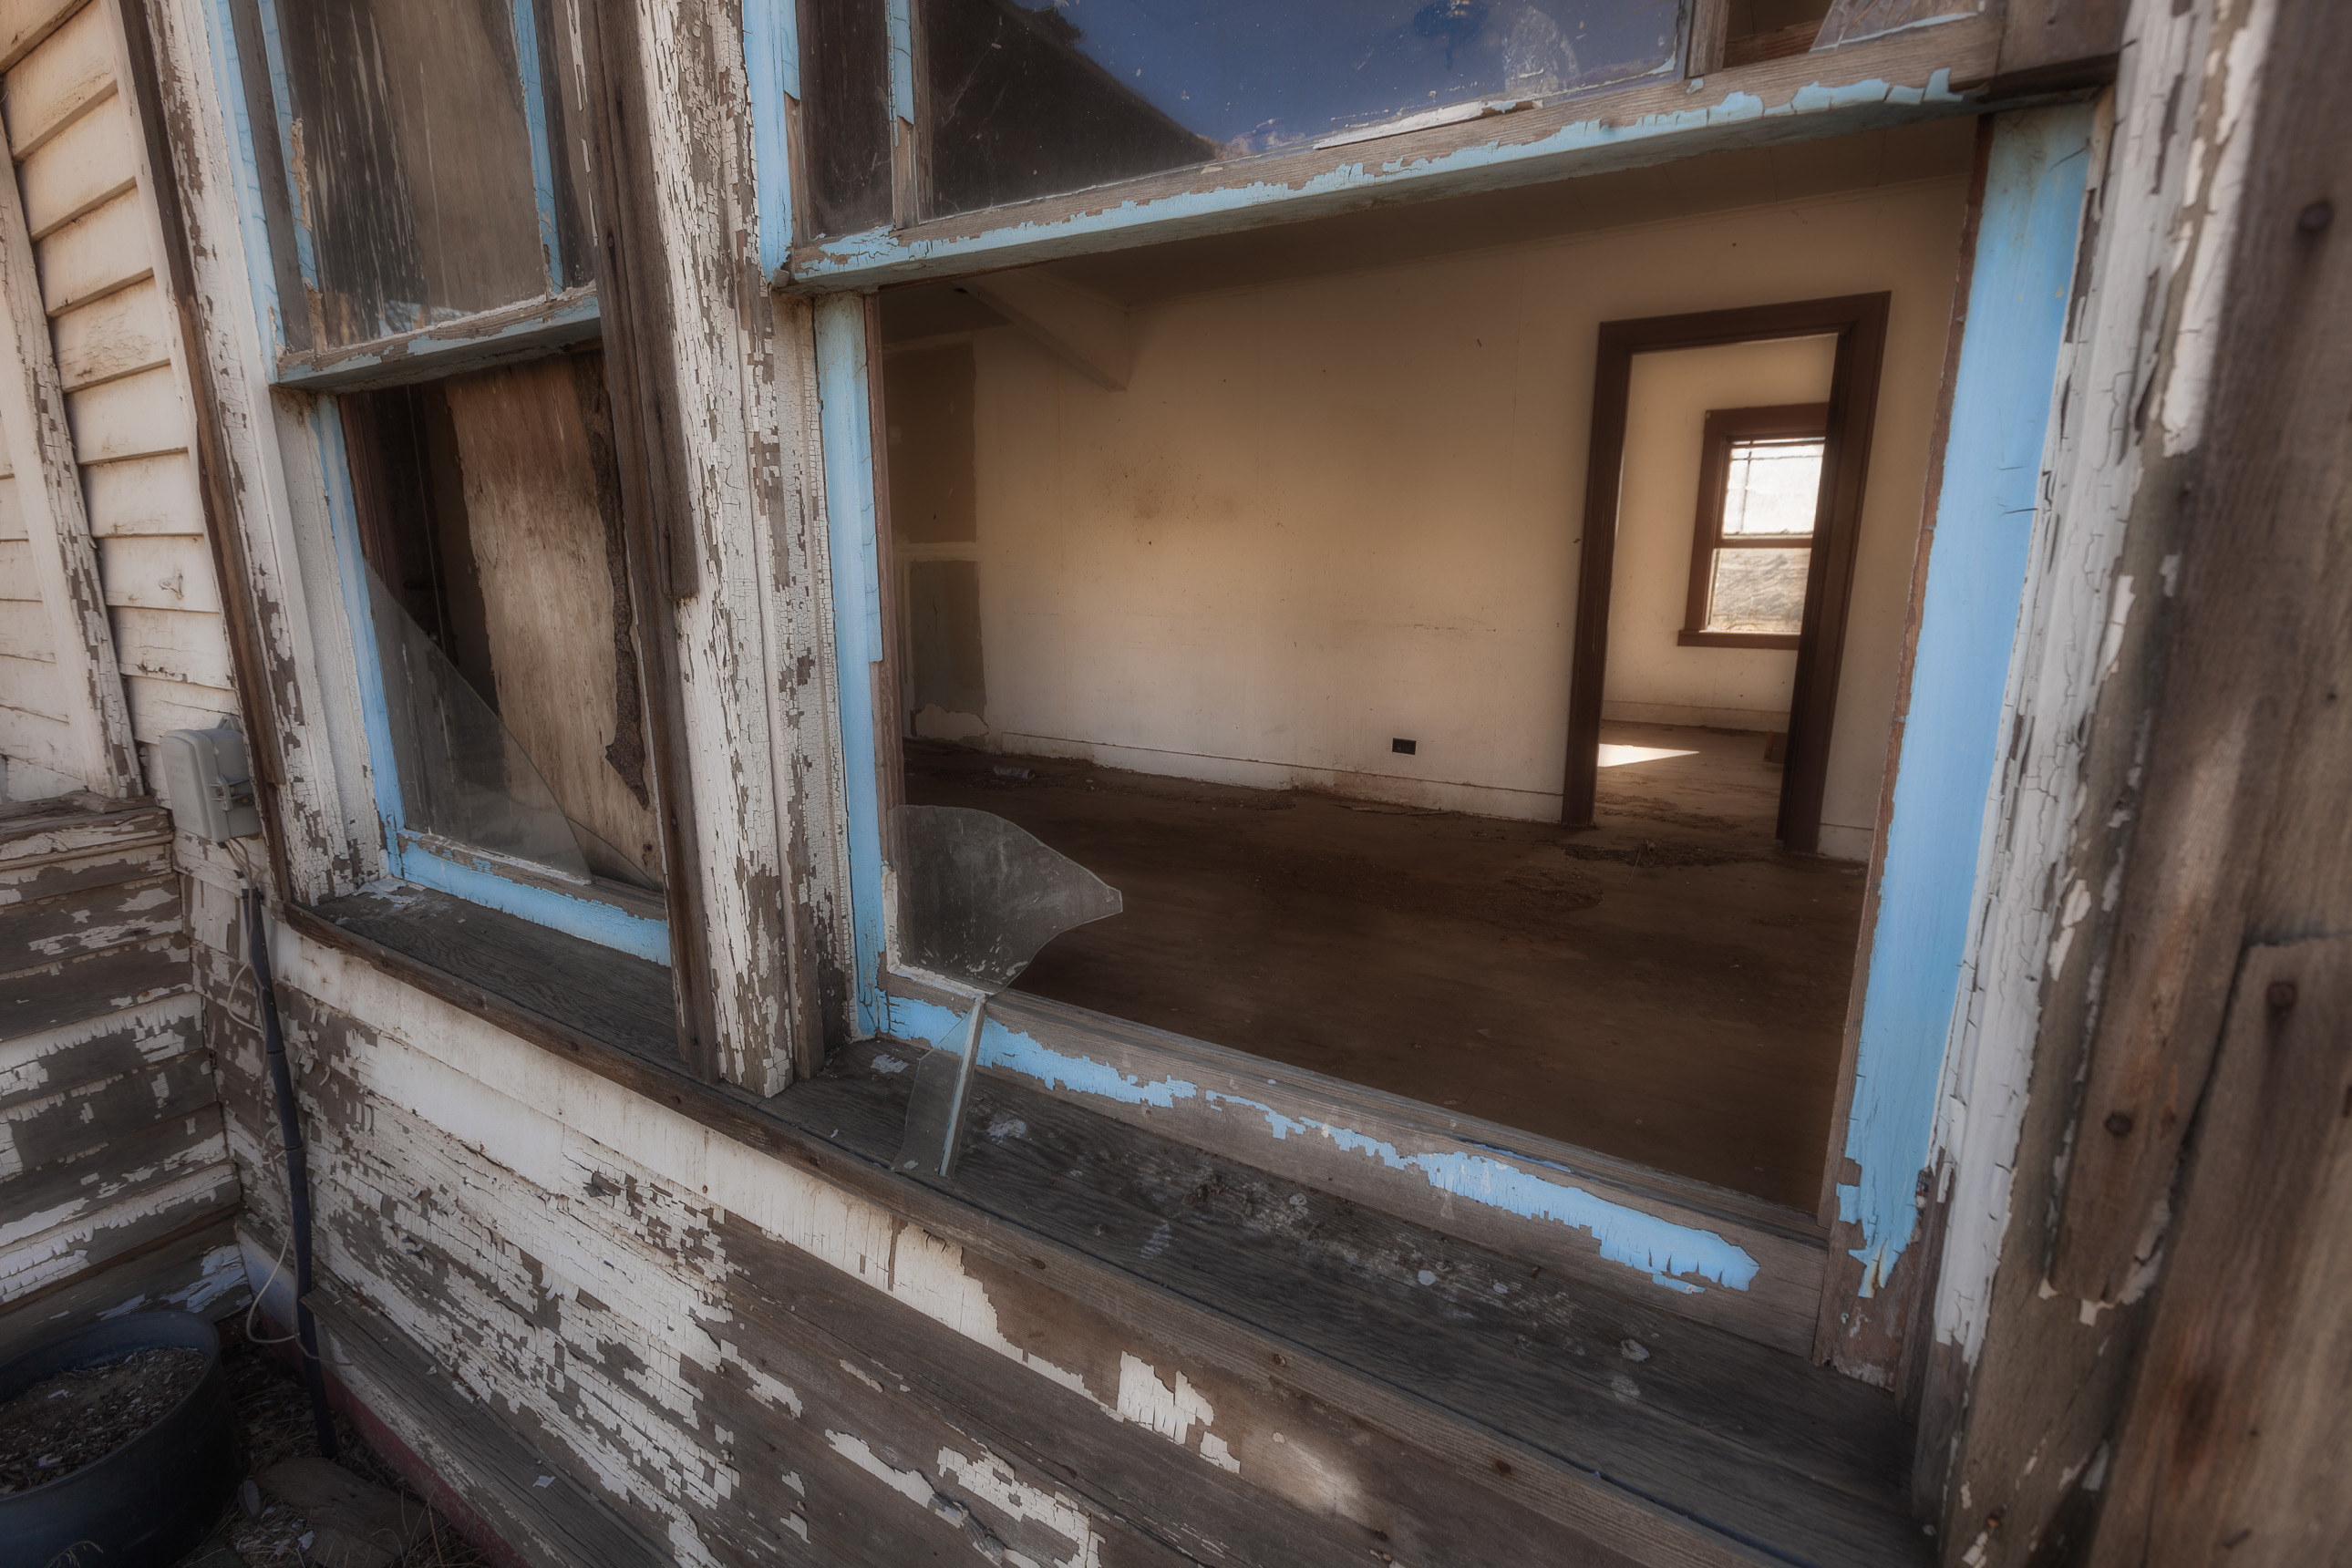 Looking Through Windows of an Abandoned House in Washington